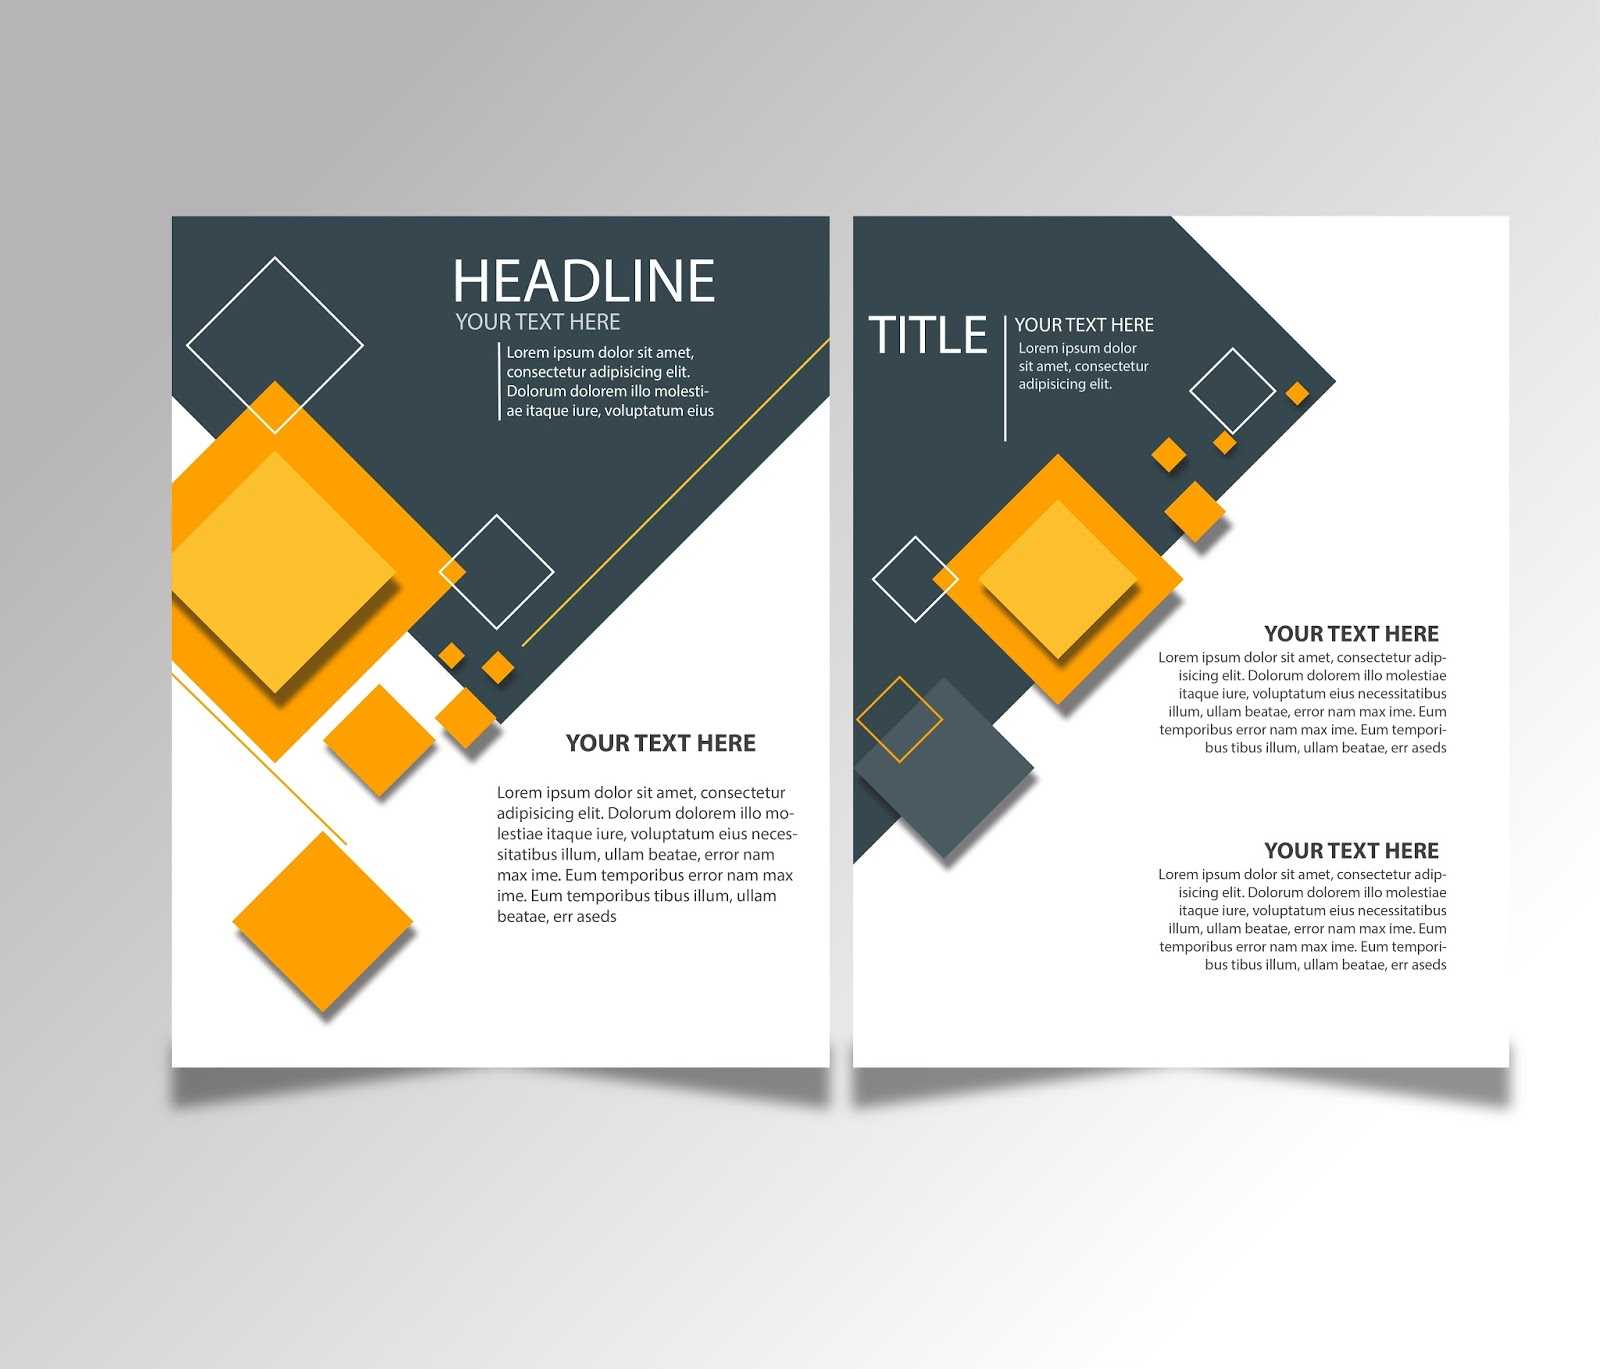 Free Download Brochure Design Templates Ai Files - Ideosprocess Throughout Ai Brochure Templates Free Download